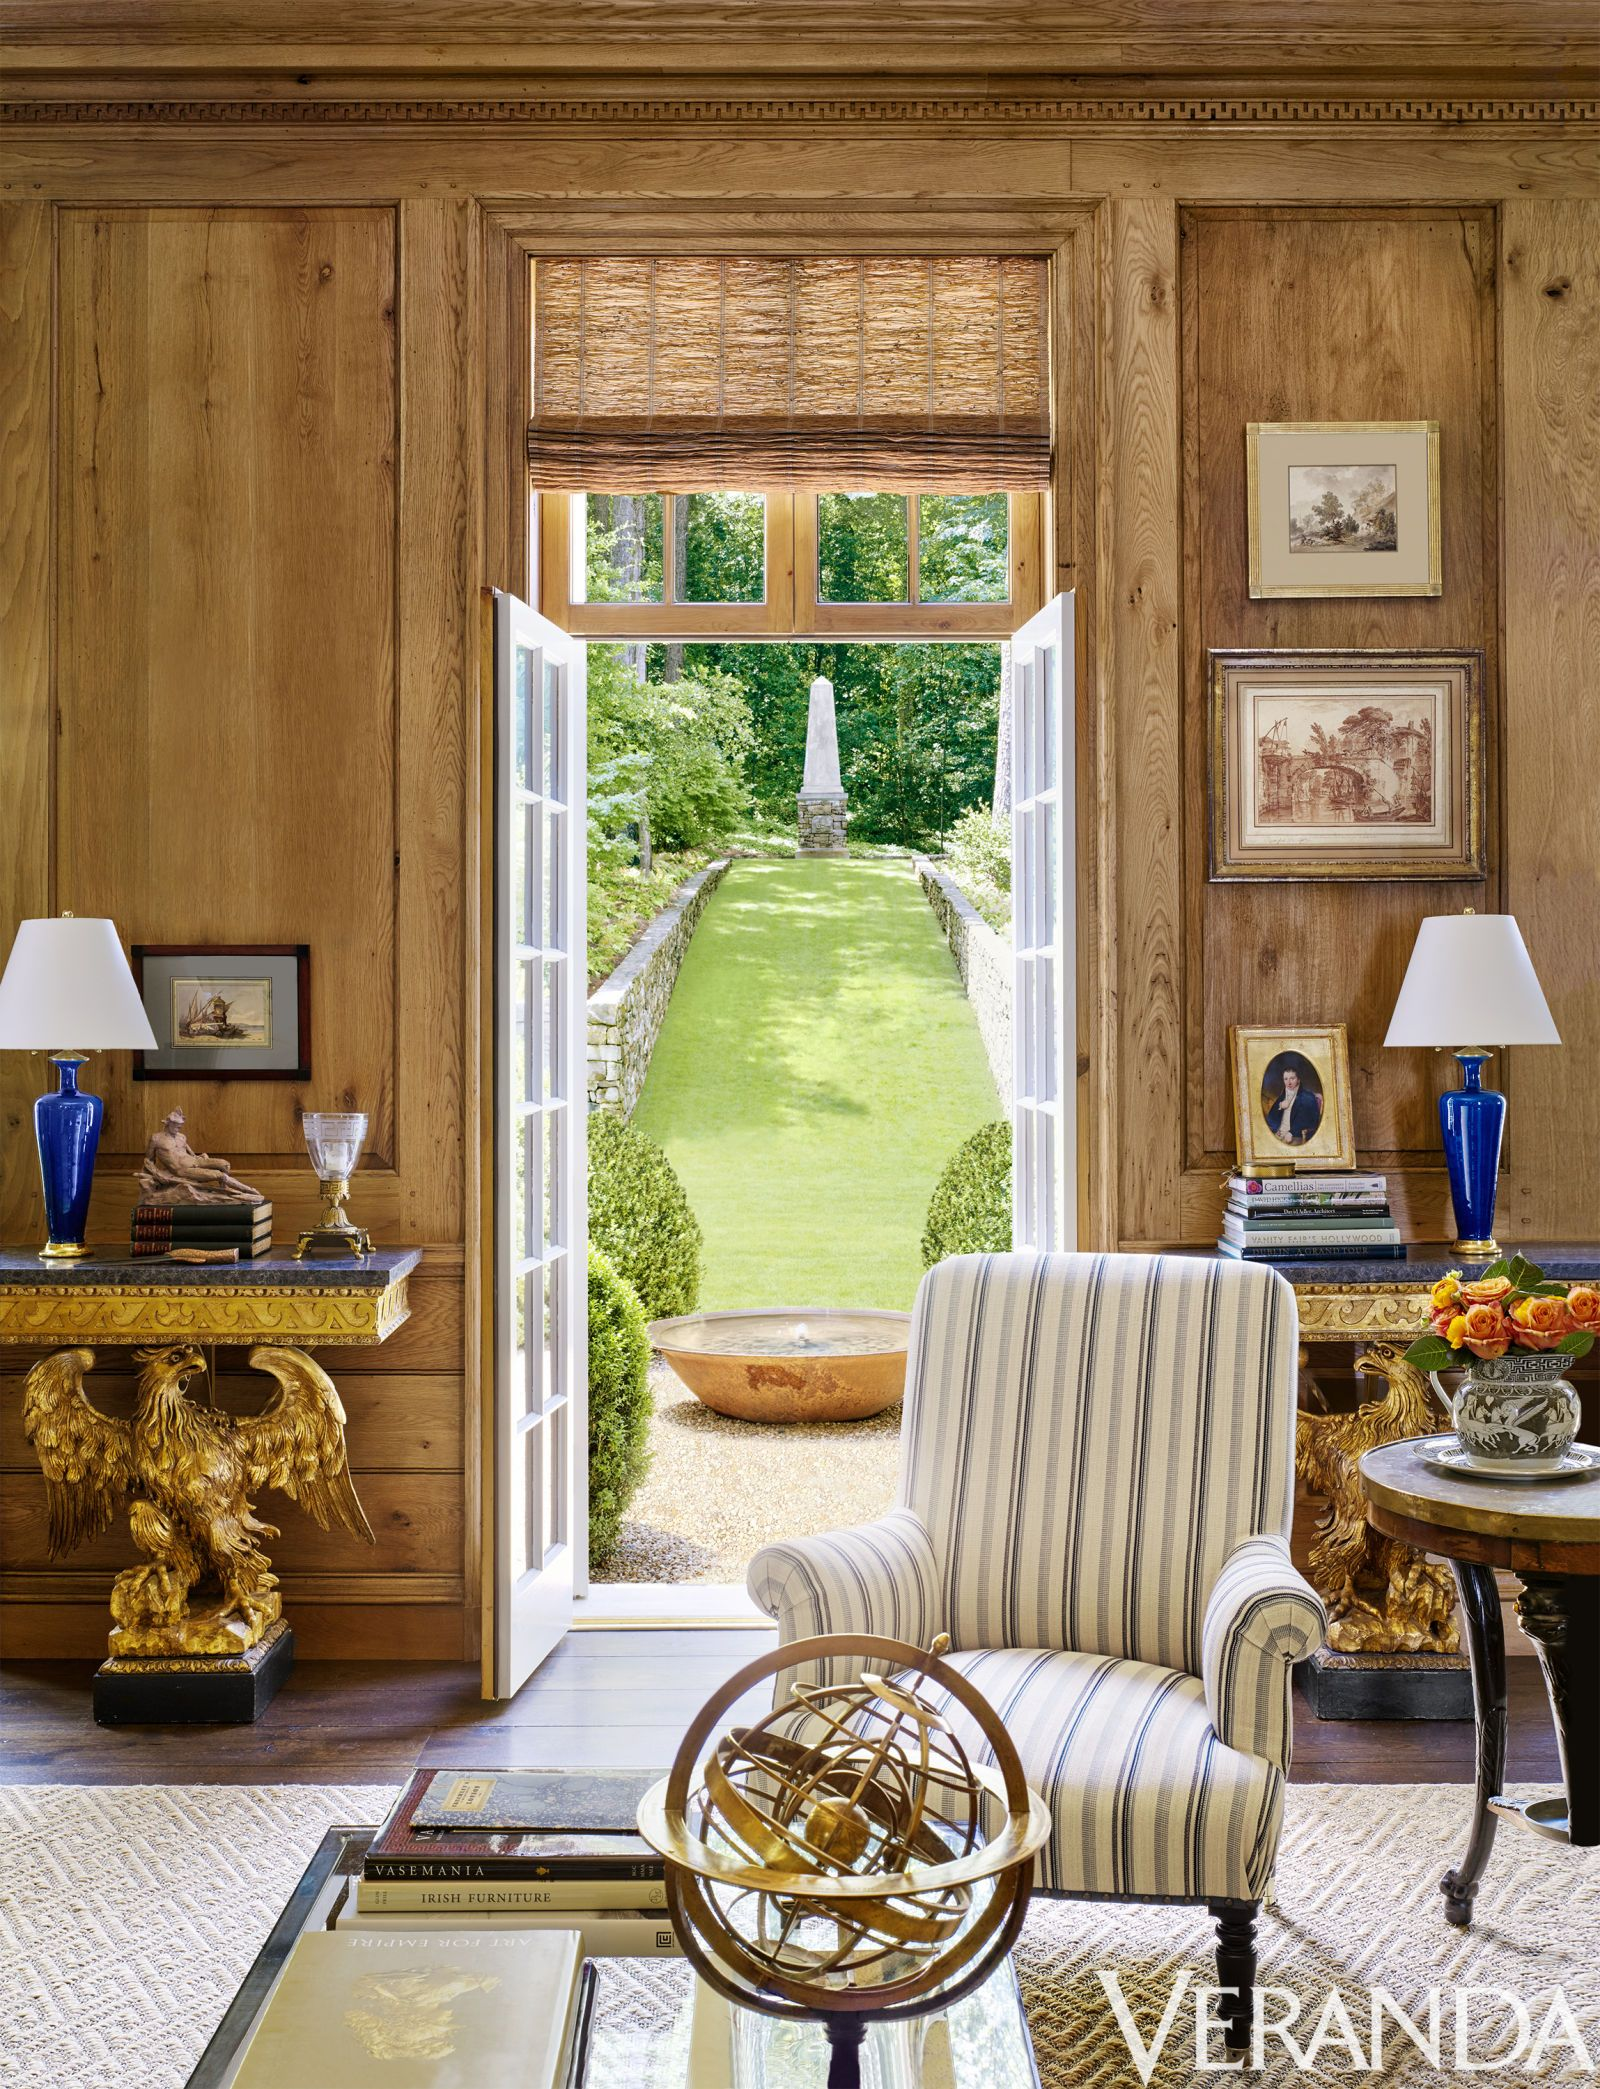 10 designers homes distinguished by curated style rooms and rh br pinterest com